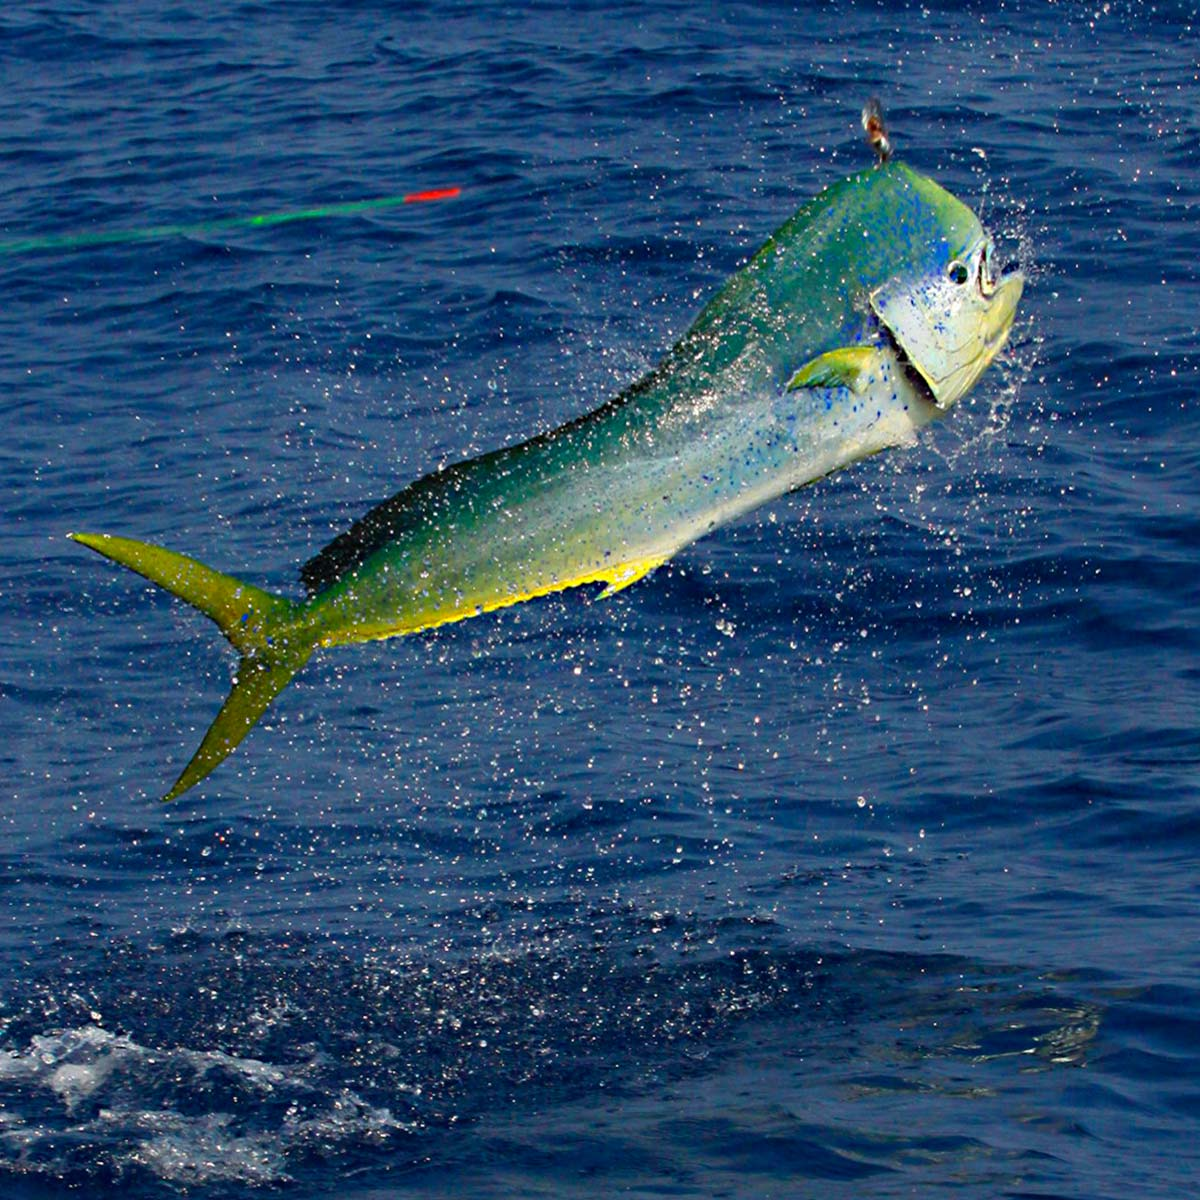 Affordable fishing in cabo san lucas seashine adventures for Fishing cabo san lucas